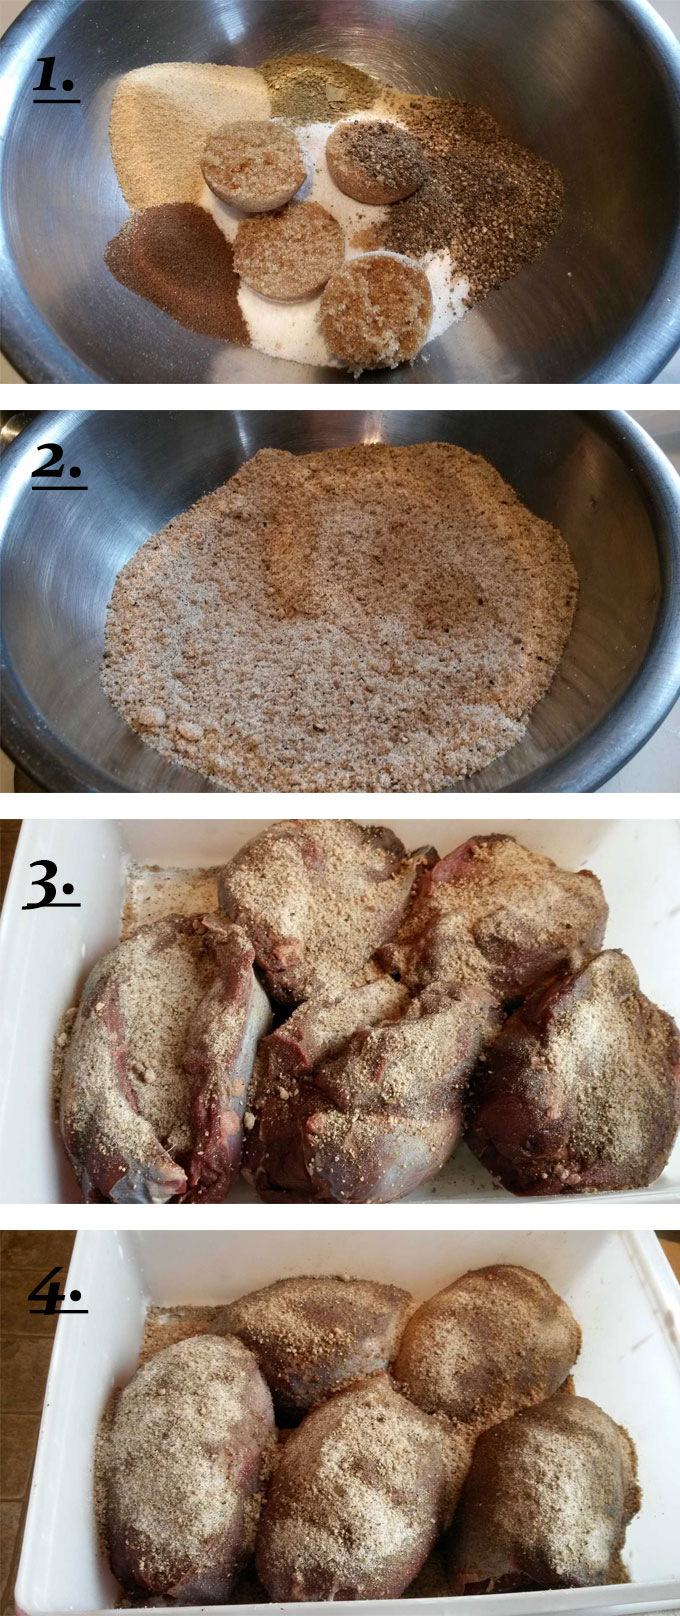 process photos for how to dry rub venison for corning #1